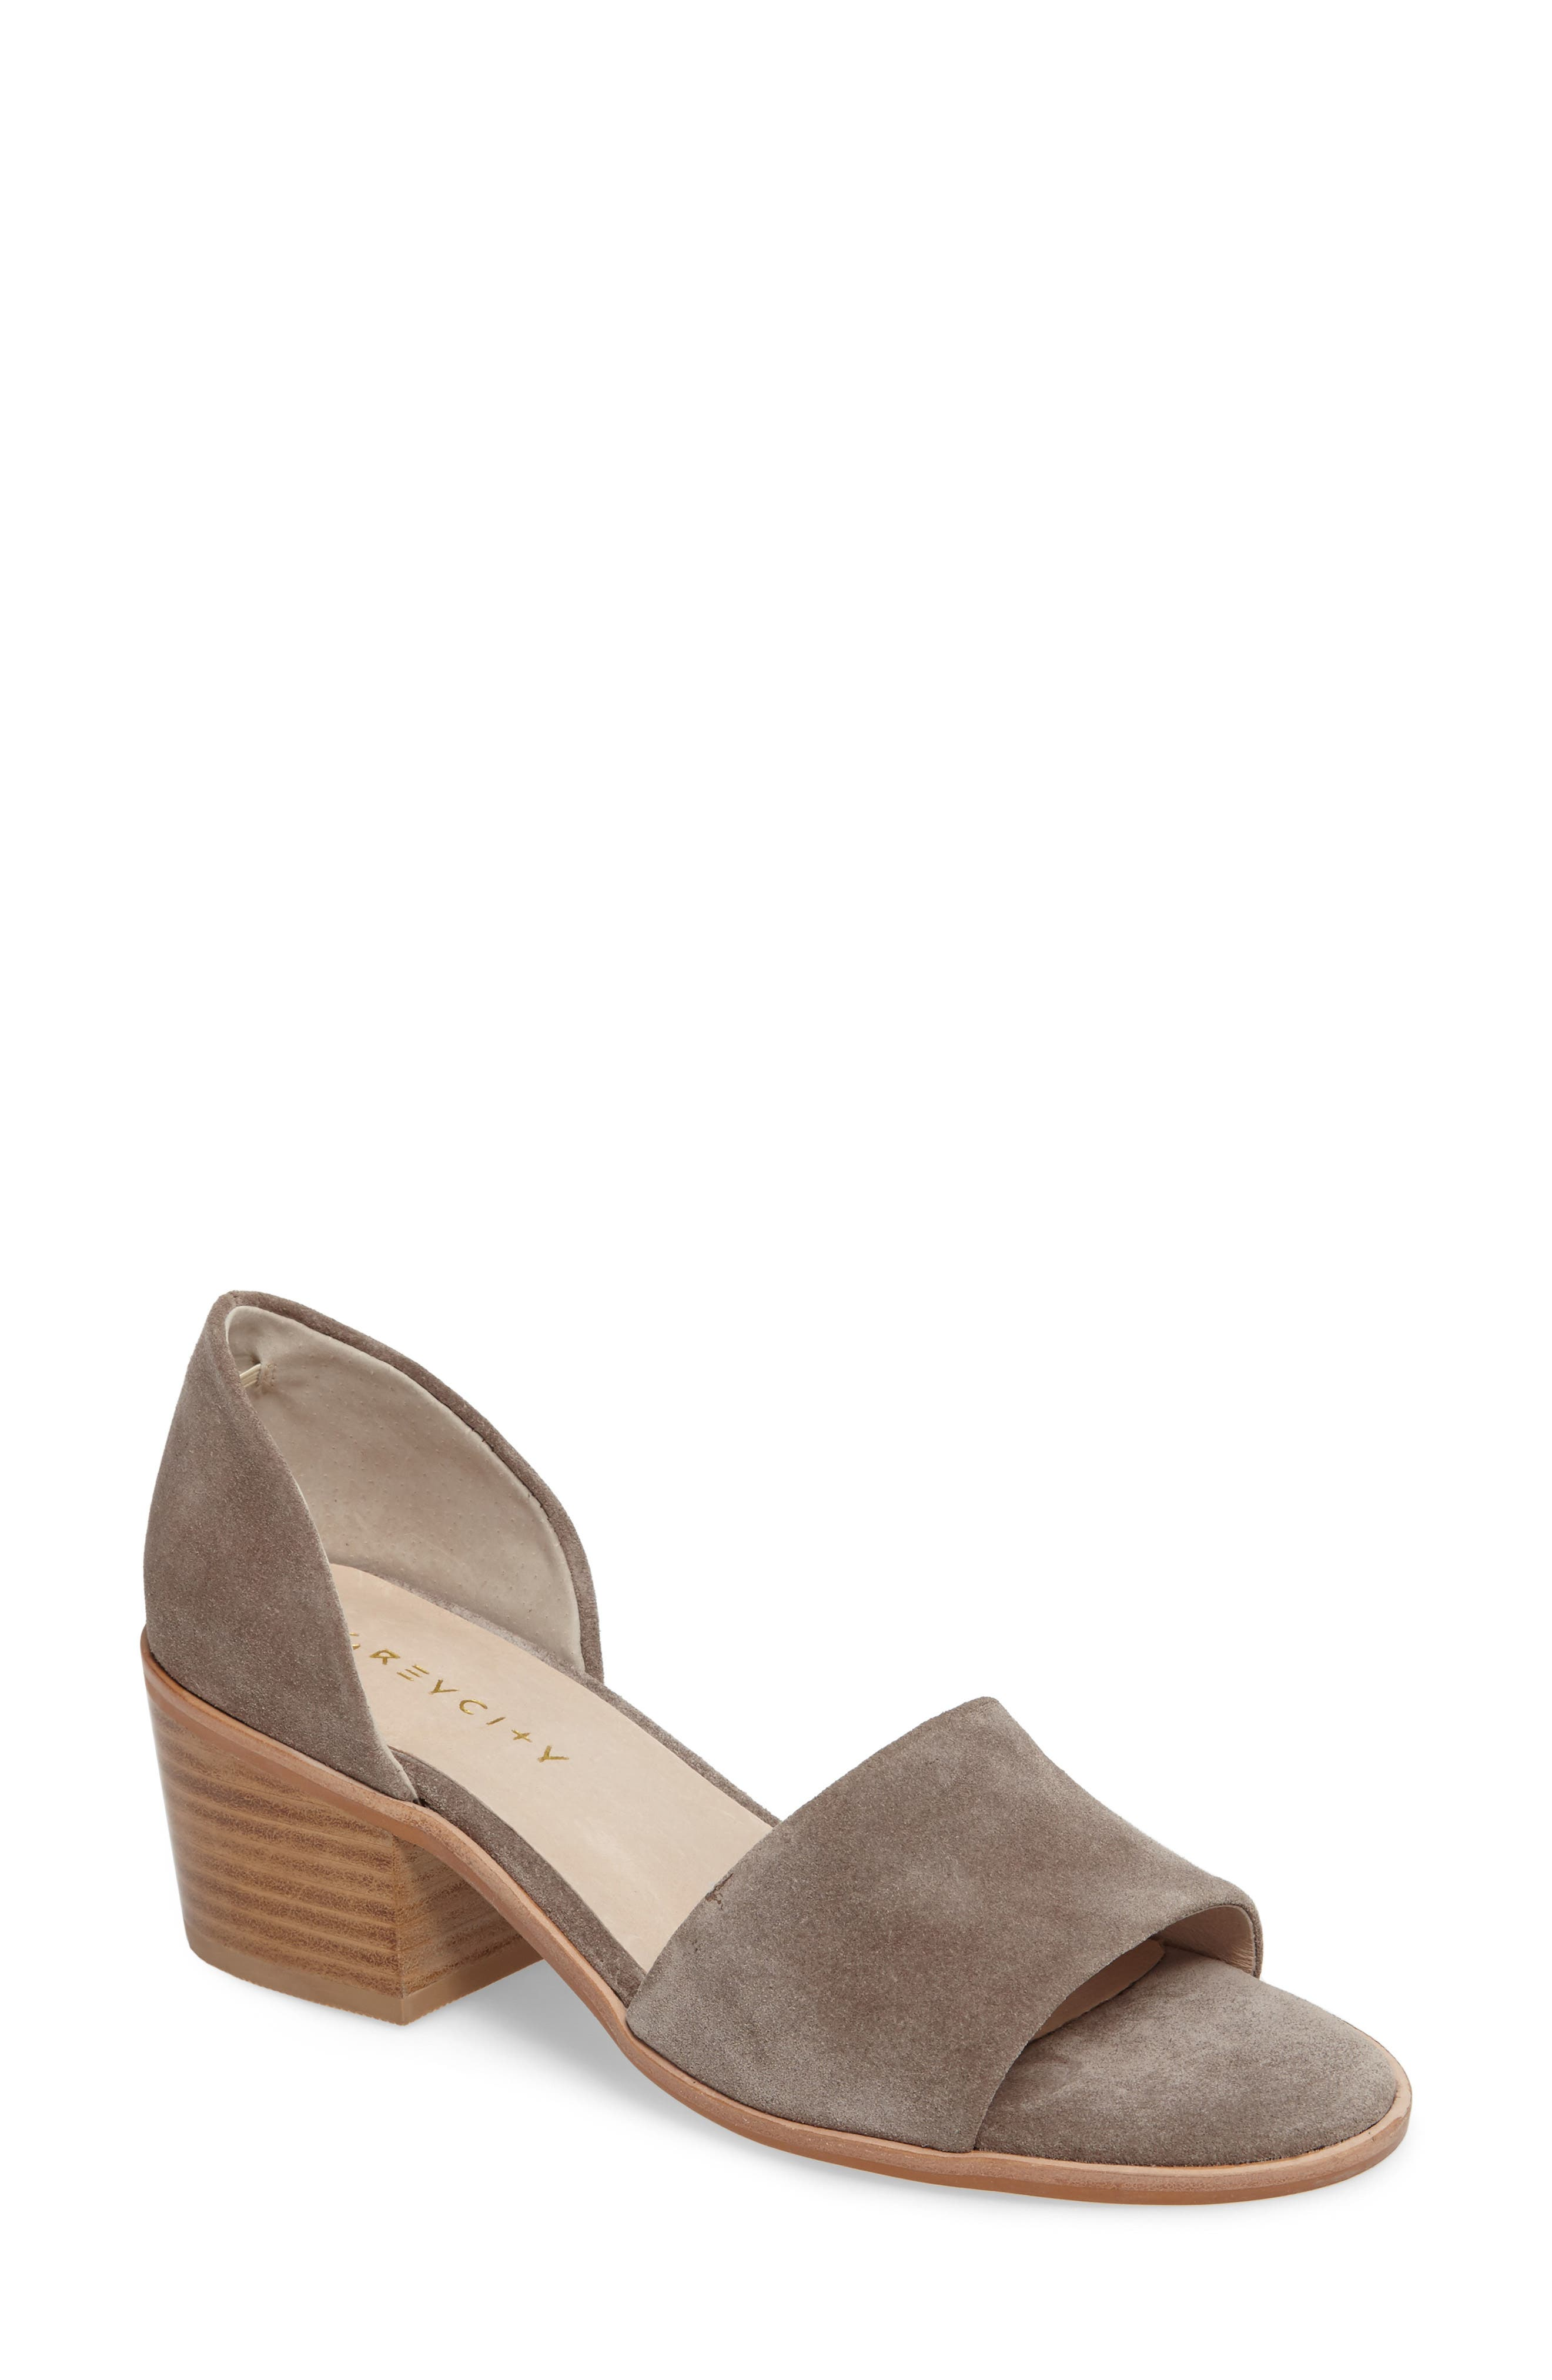 Grey City Ditty Block Heel Sandal (Women)